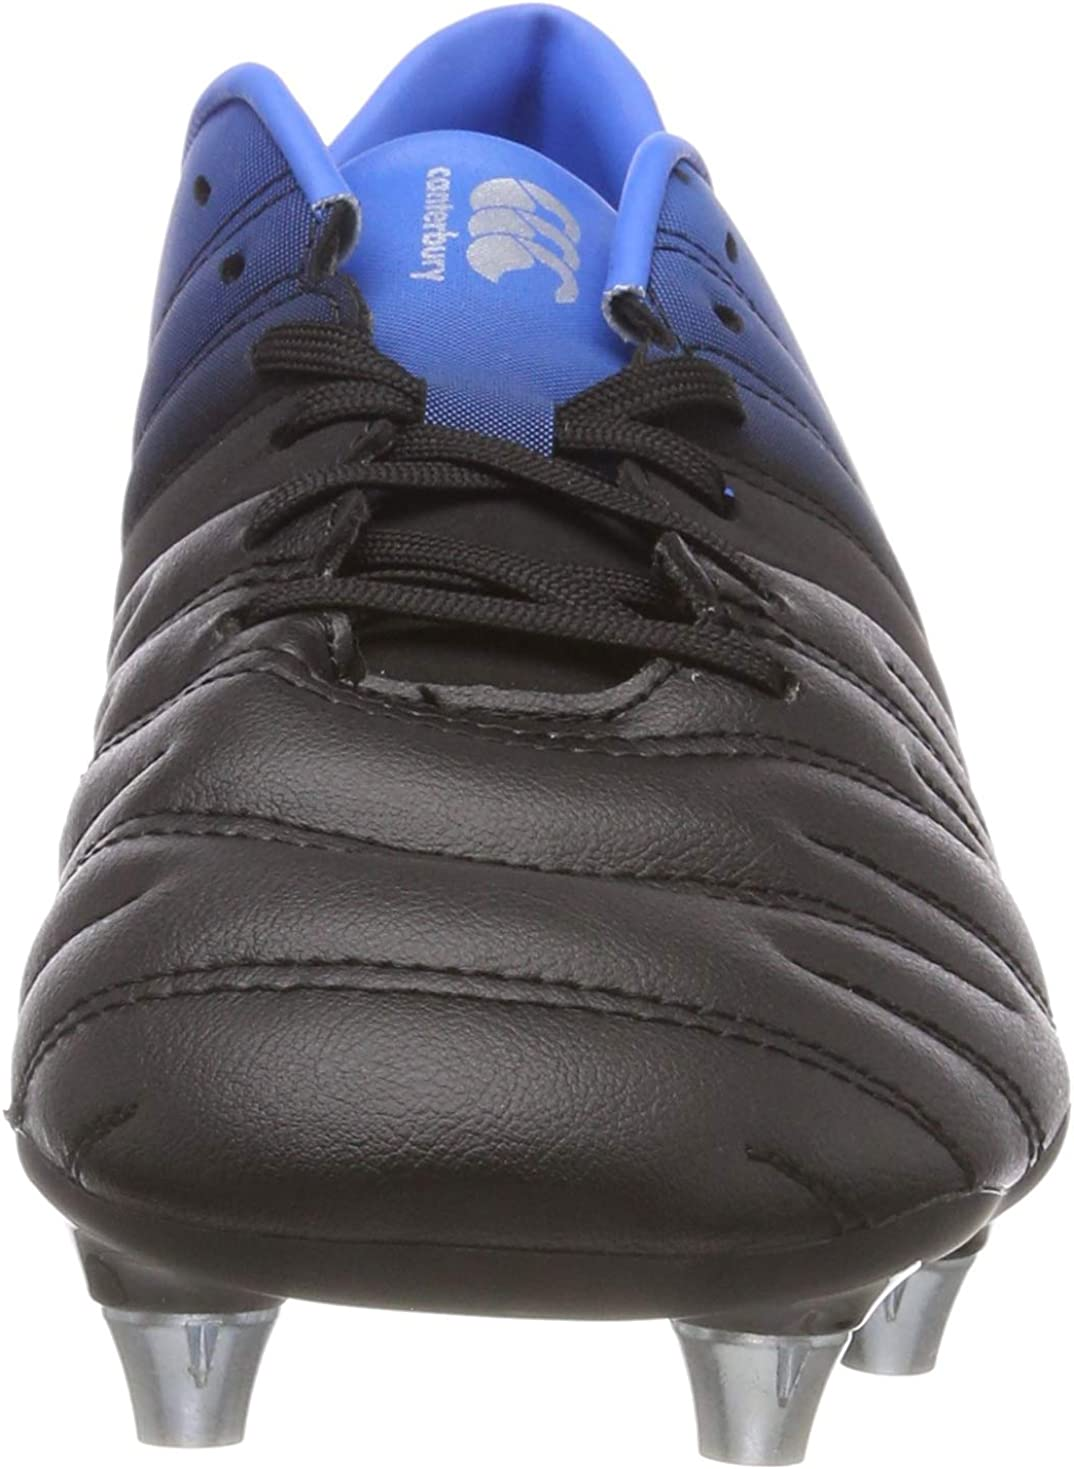 Canterbury Mens Soft Ground Rugby Boots